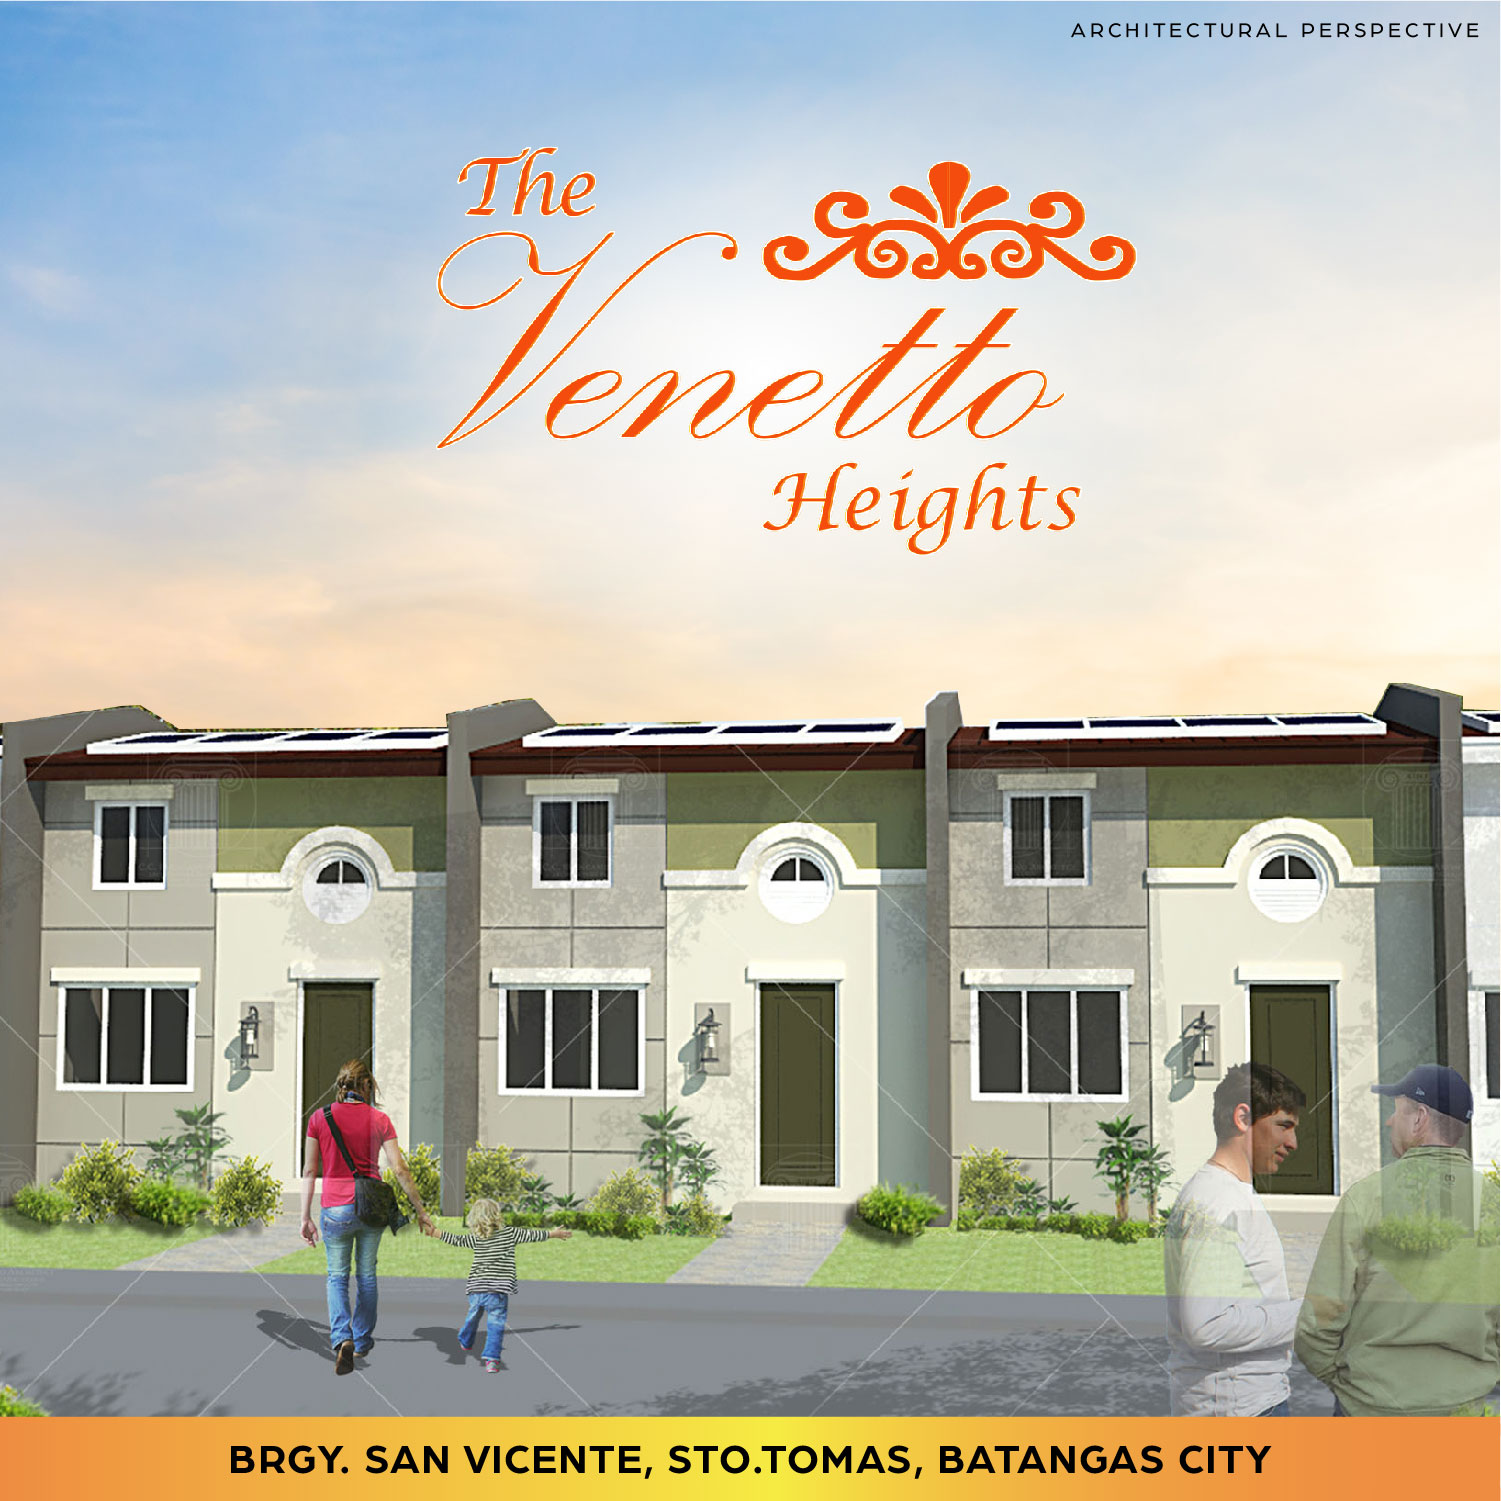 The Venetto Heights